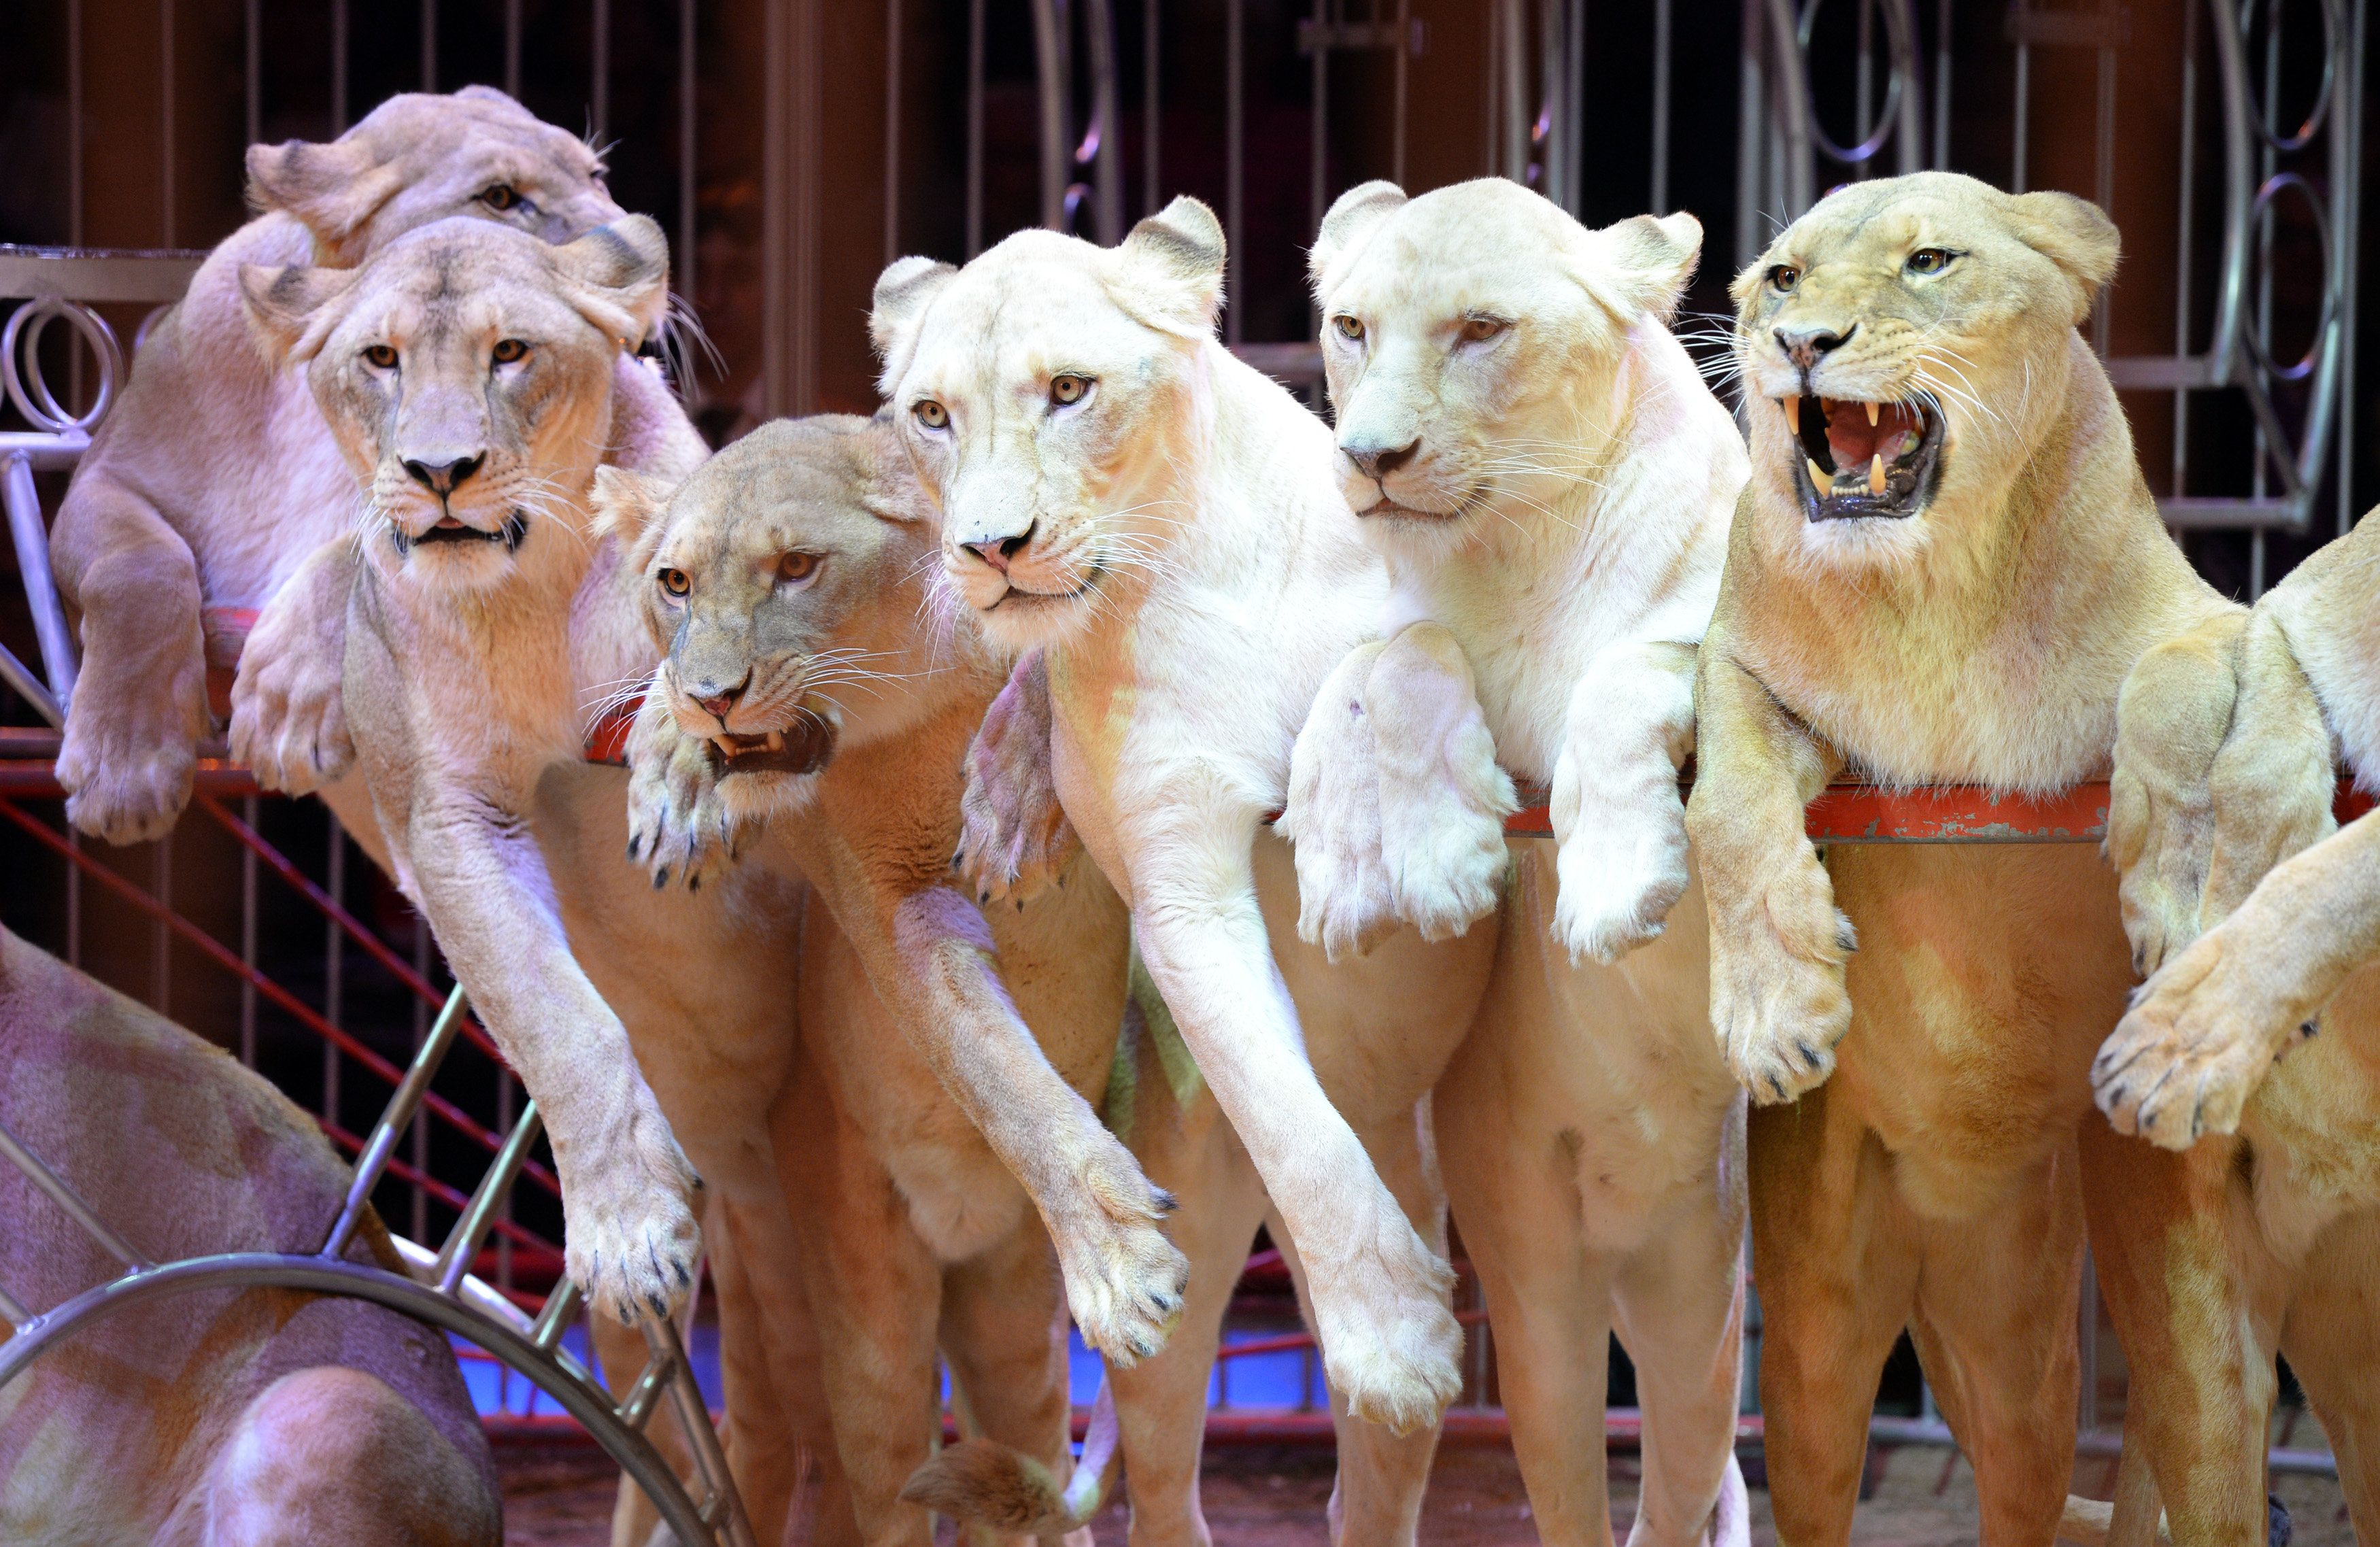 Wild animals like lions, elephants, bears and camels frequently feature in traveling circuses.